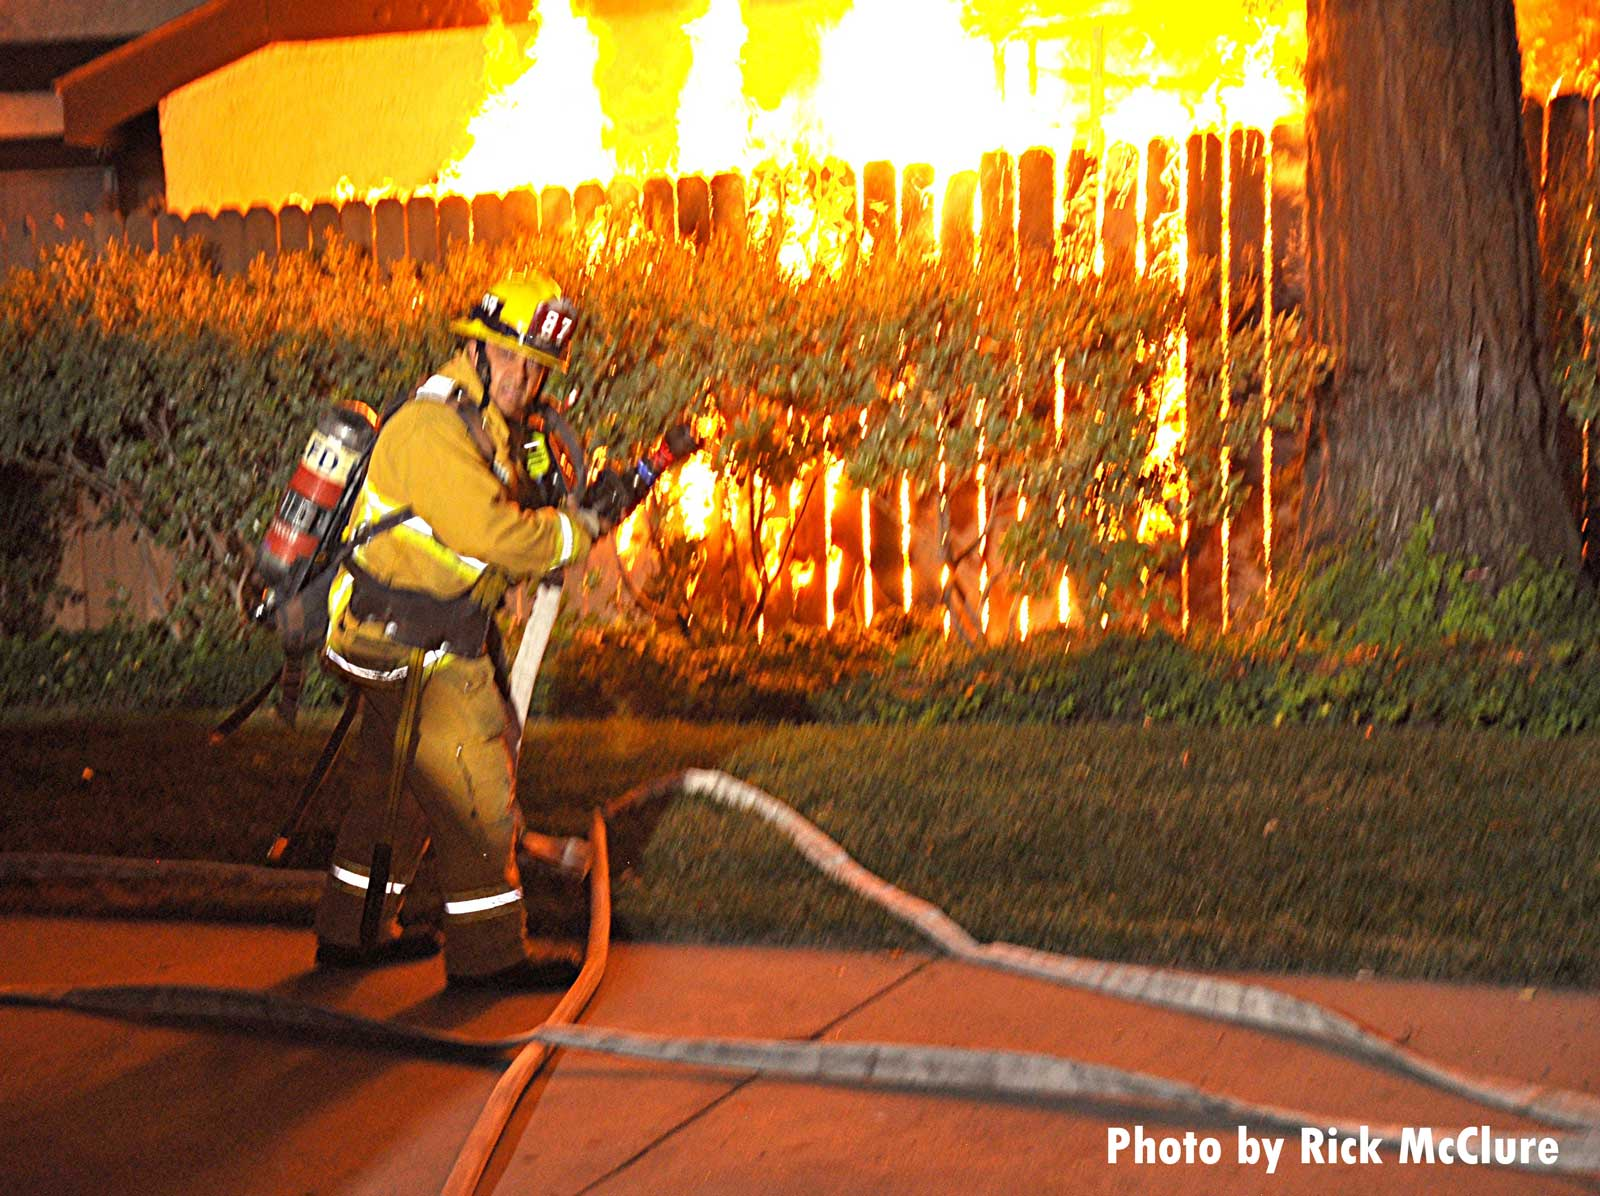 Firefighter with a hoseline near a fence as fire rages in a building in the background